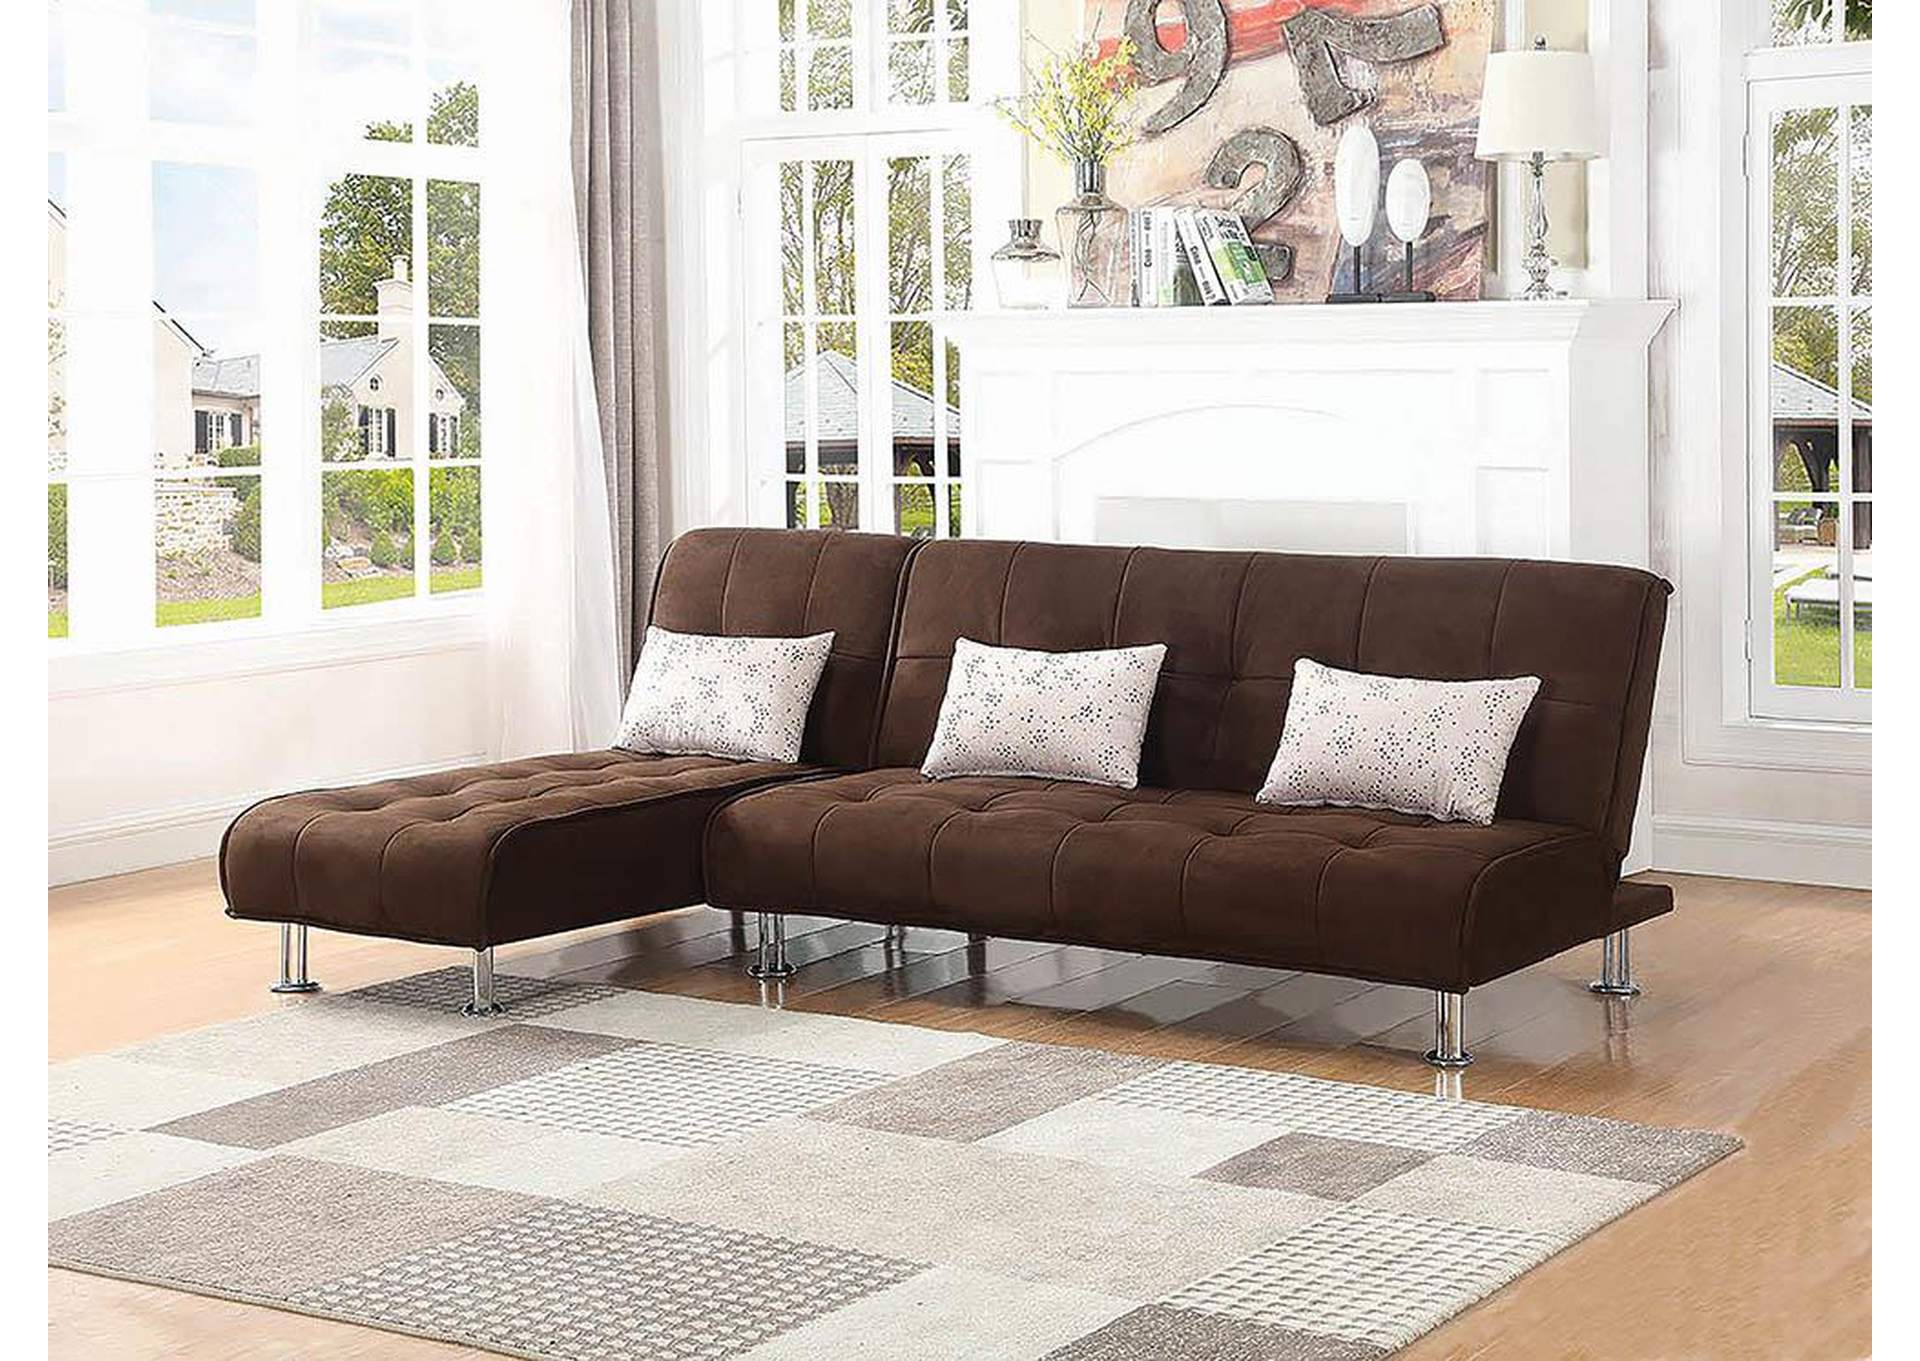 Ellwood Brown Sofa Bed,Coaster Furniture